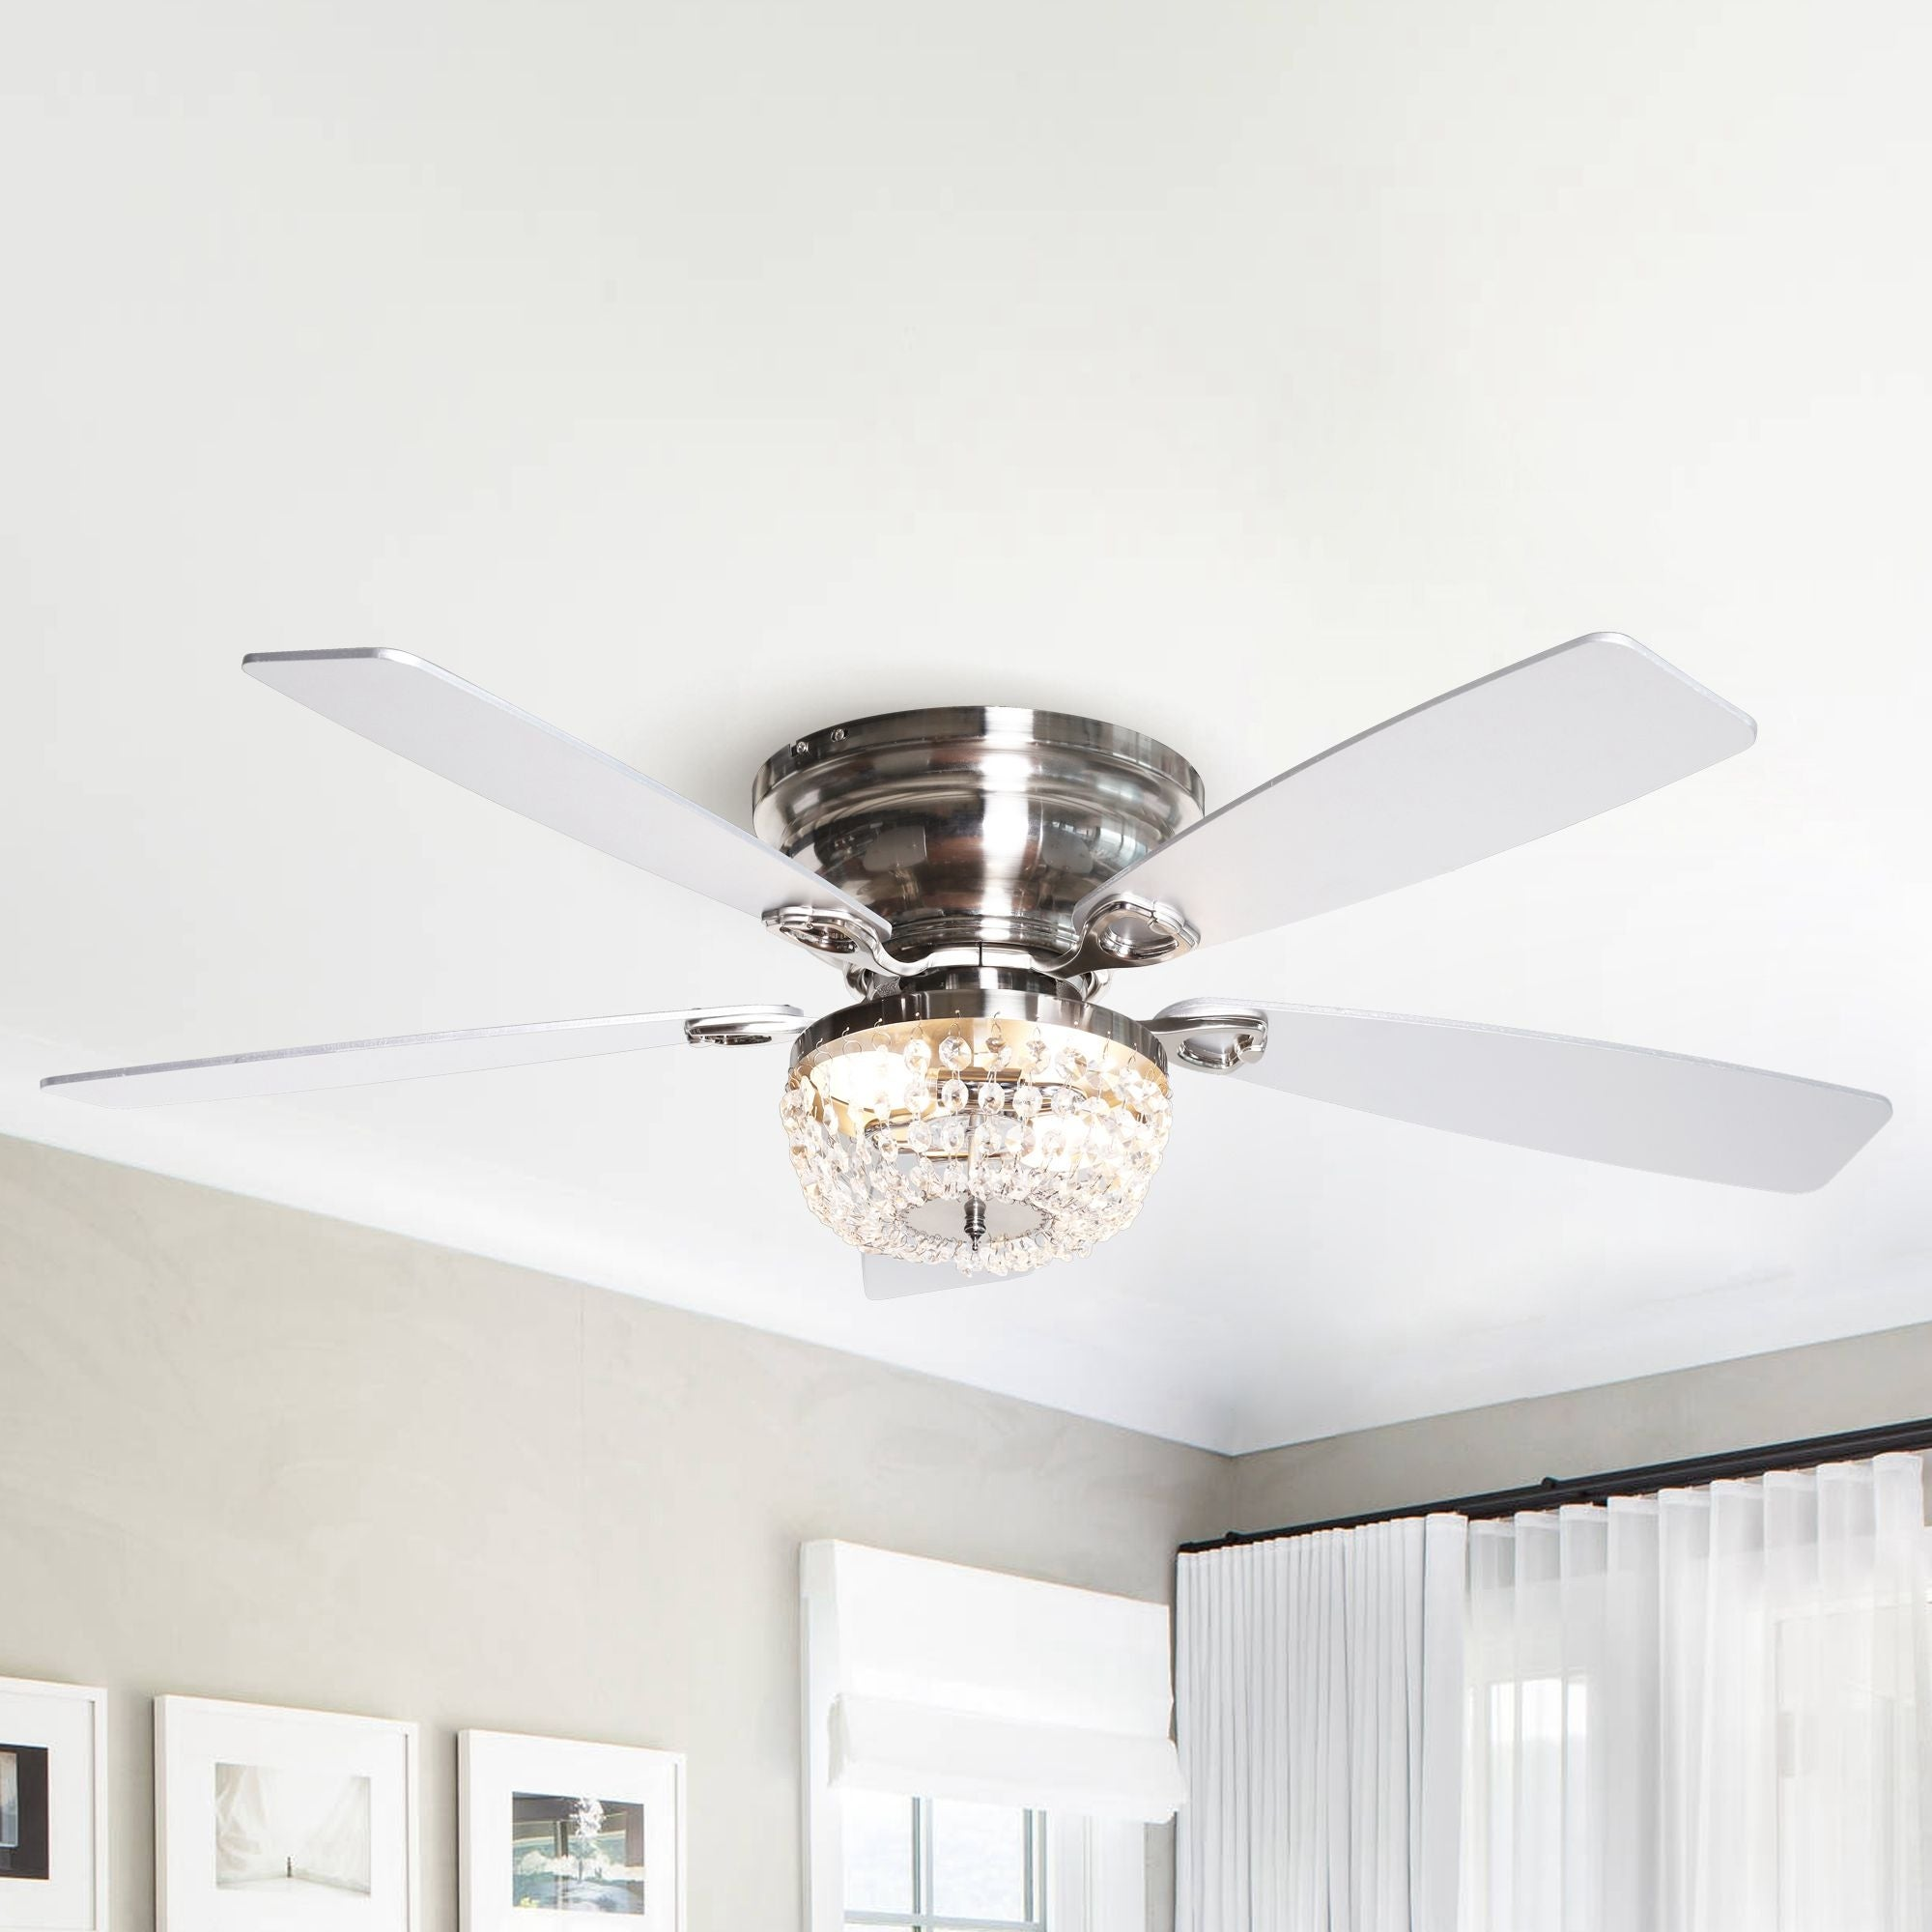 Shop Black Friday Deals On 48 Low Profile Crystal Indoor Ceiling Fan Overstock 31727470